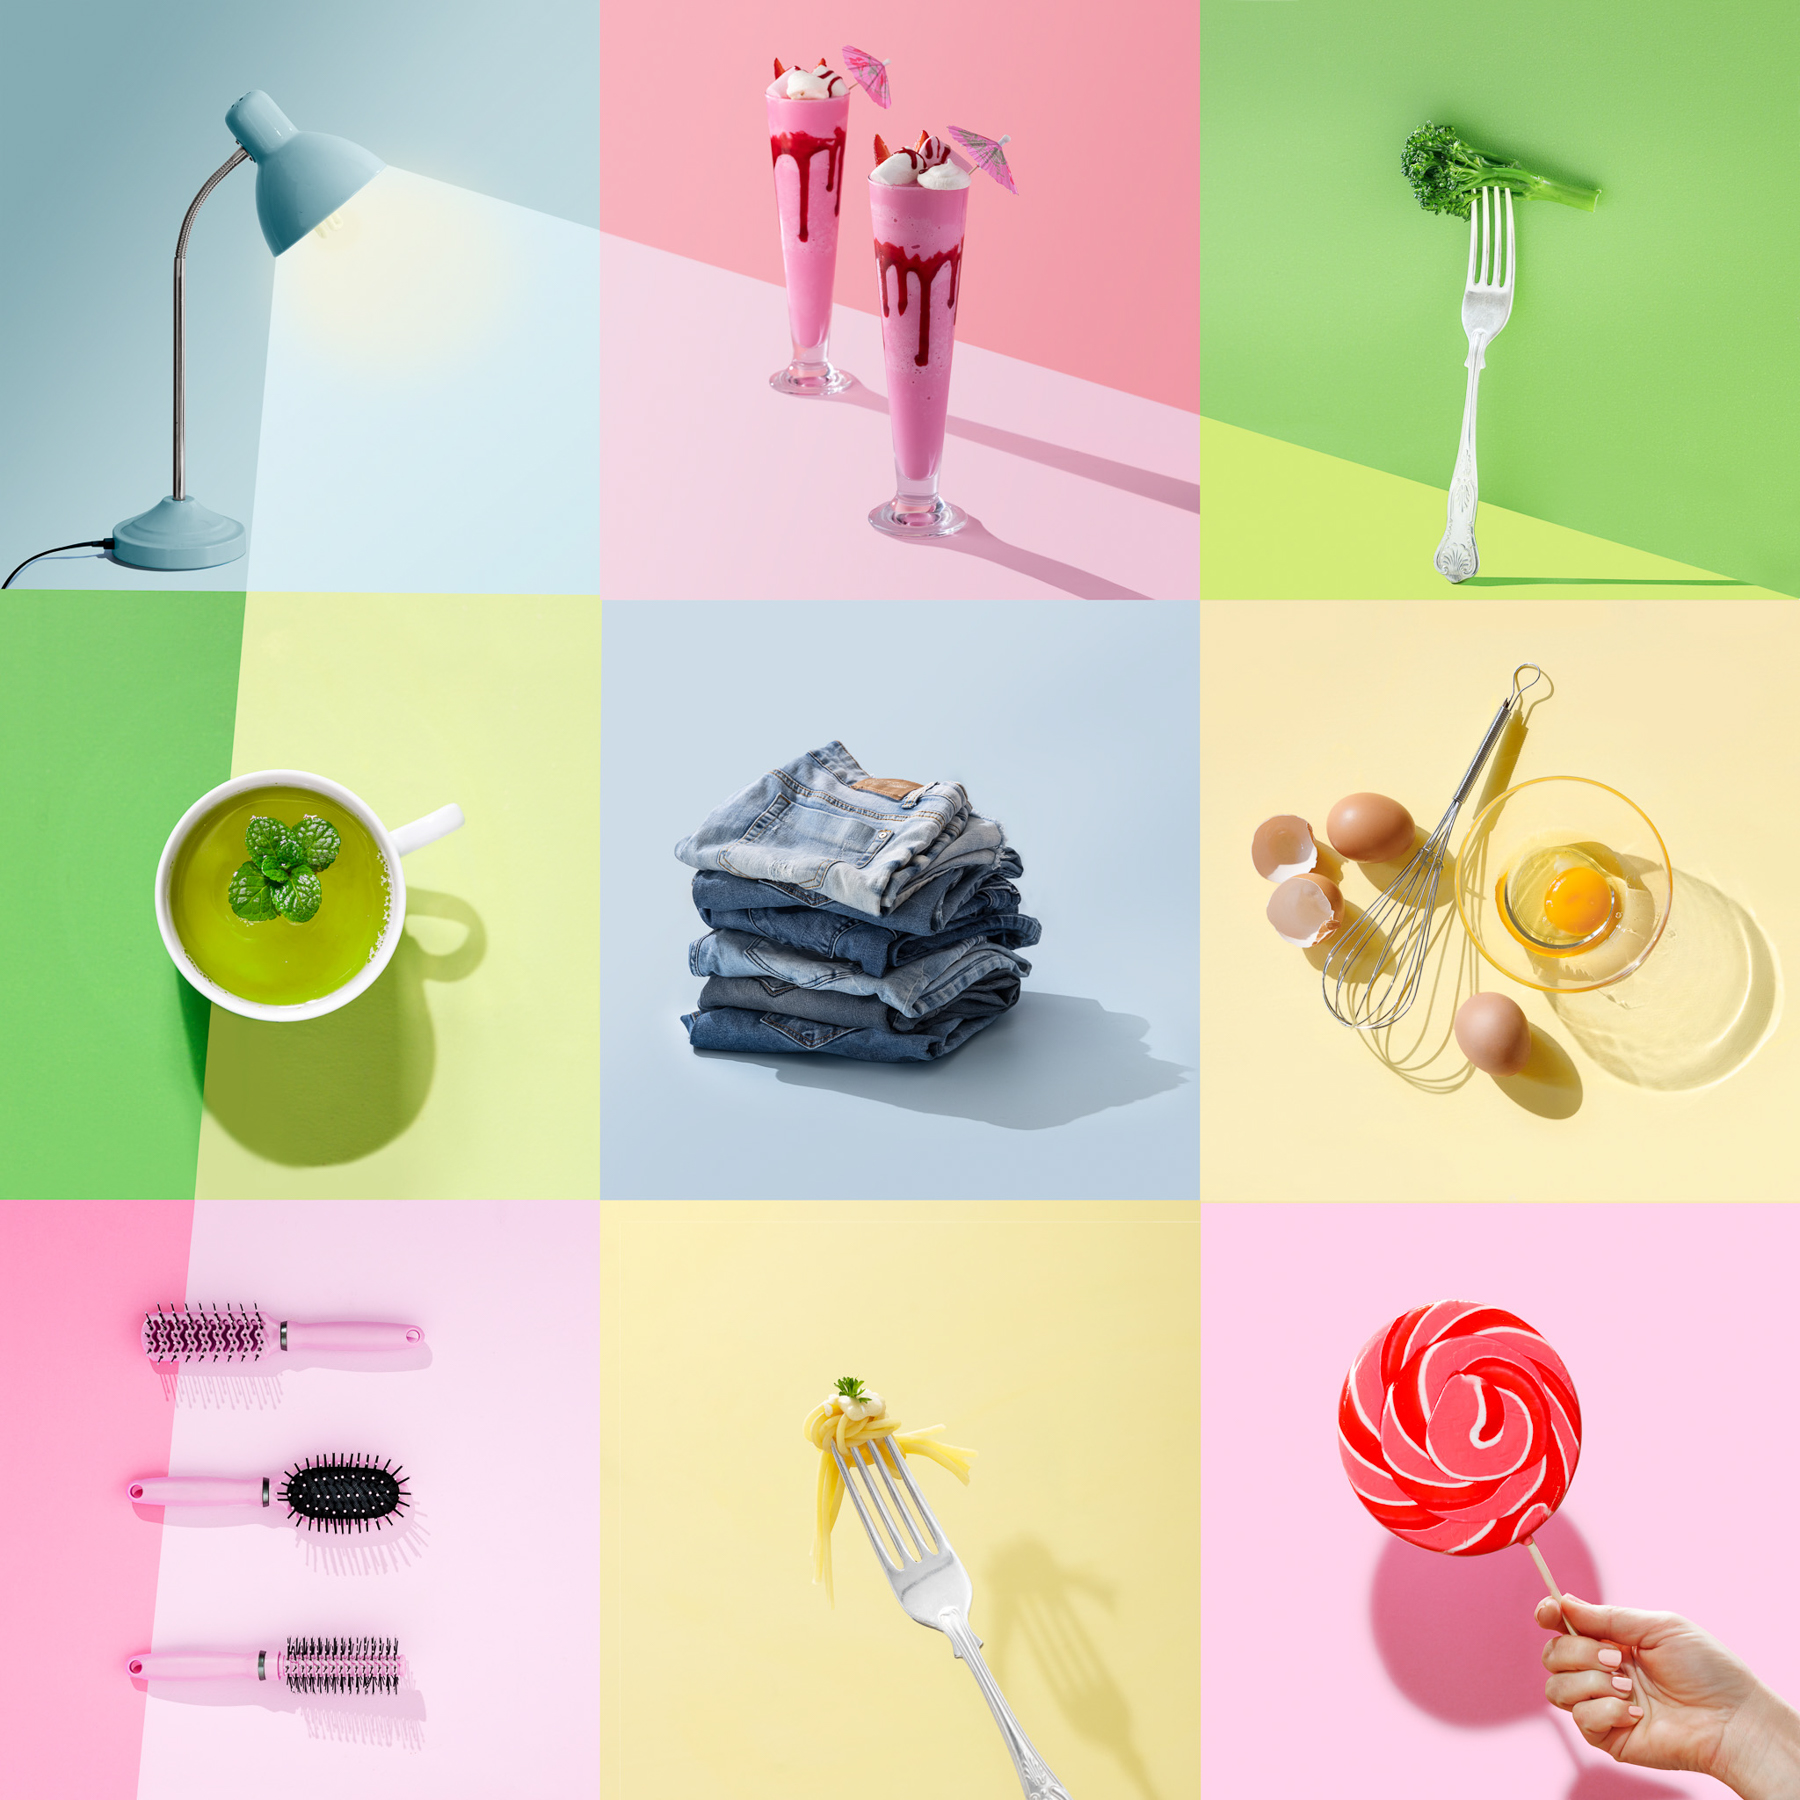 grid of 9 images in cotton candy colors being lit by a lamp, image by Carla McMahon